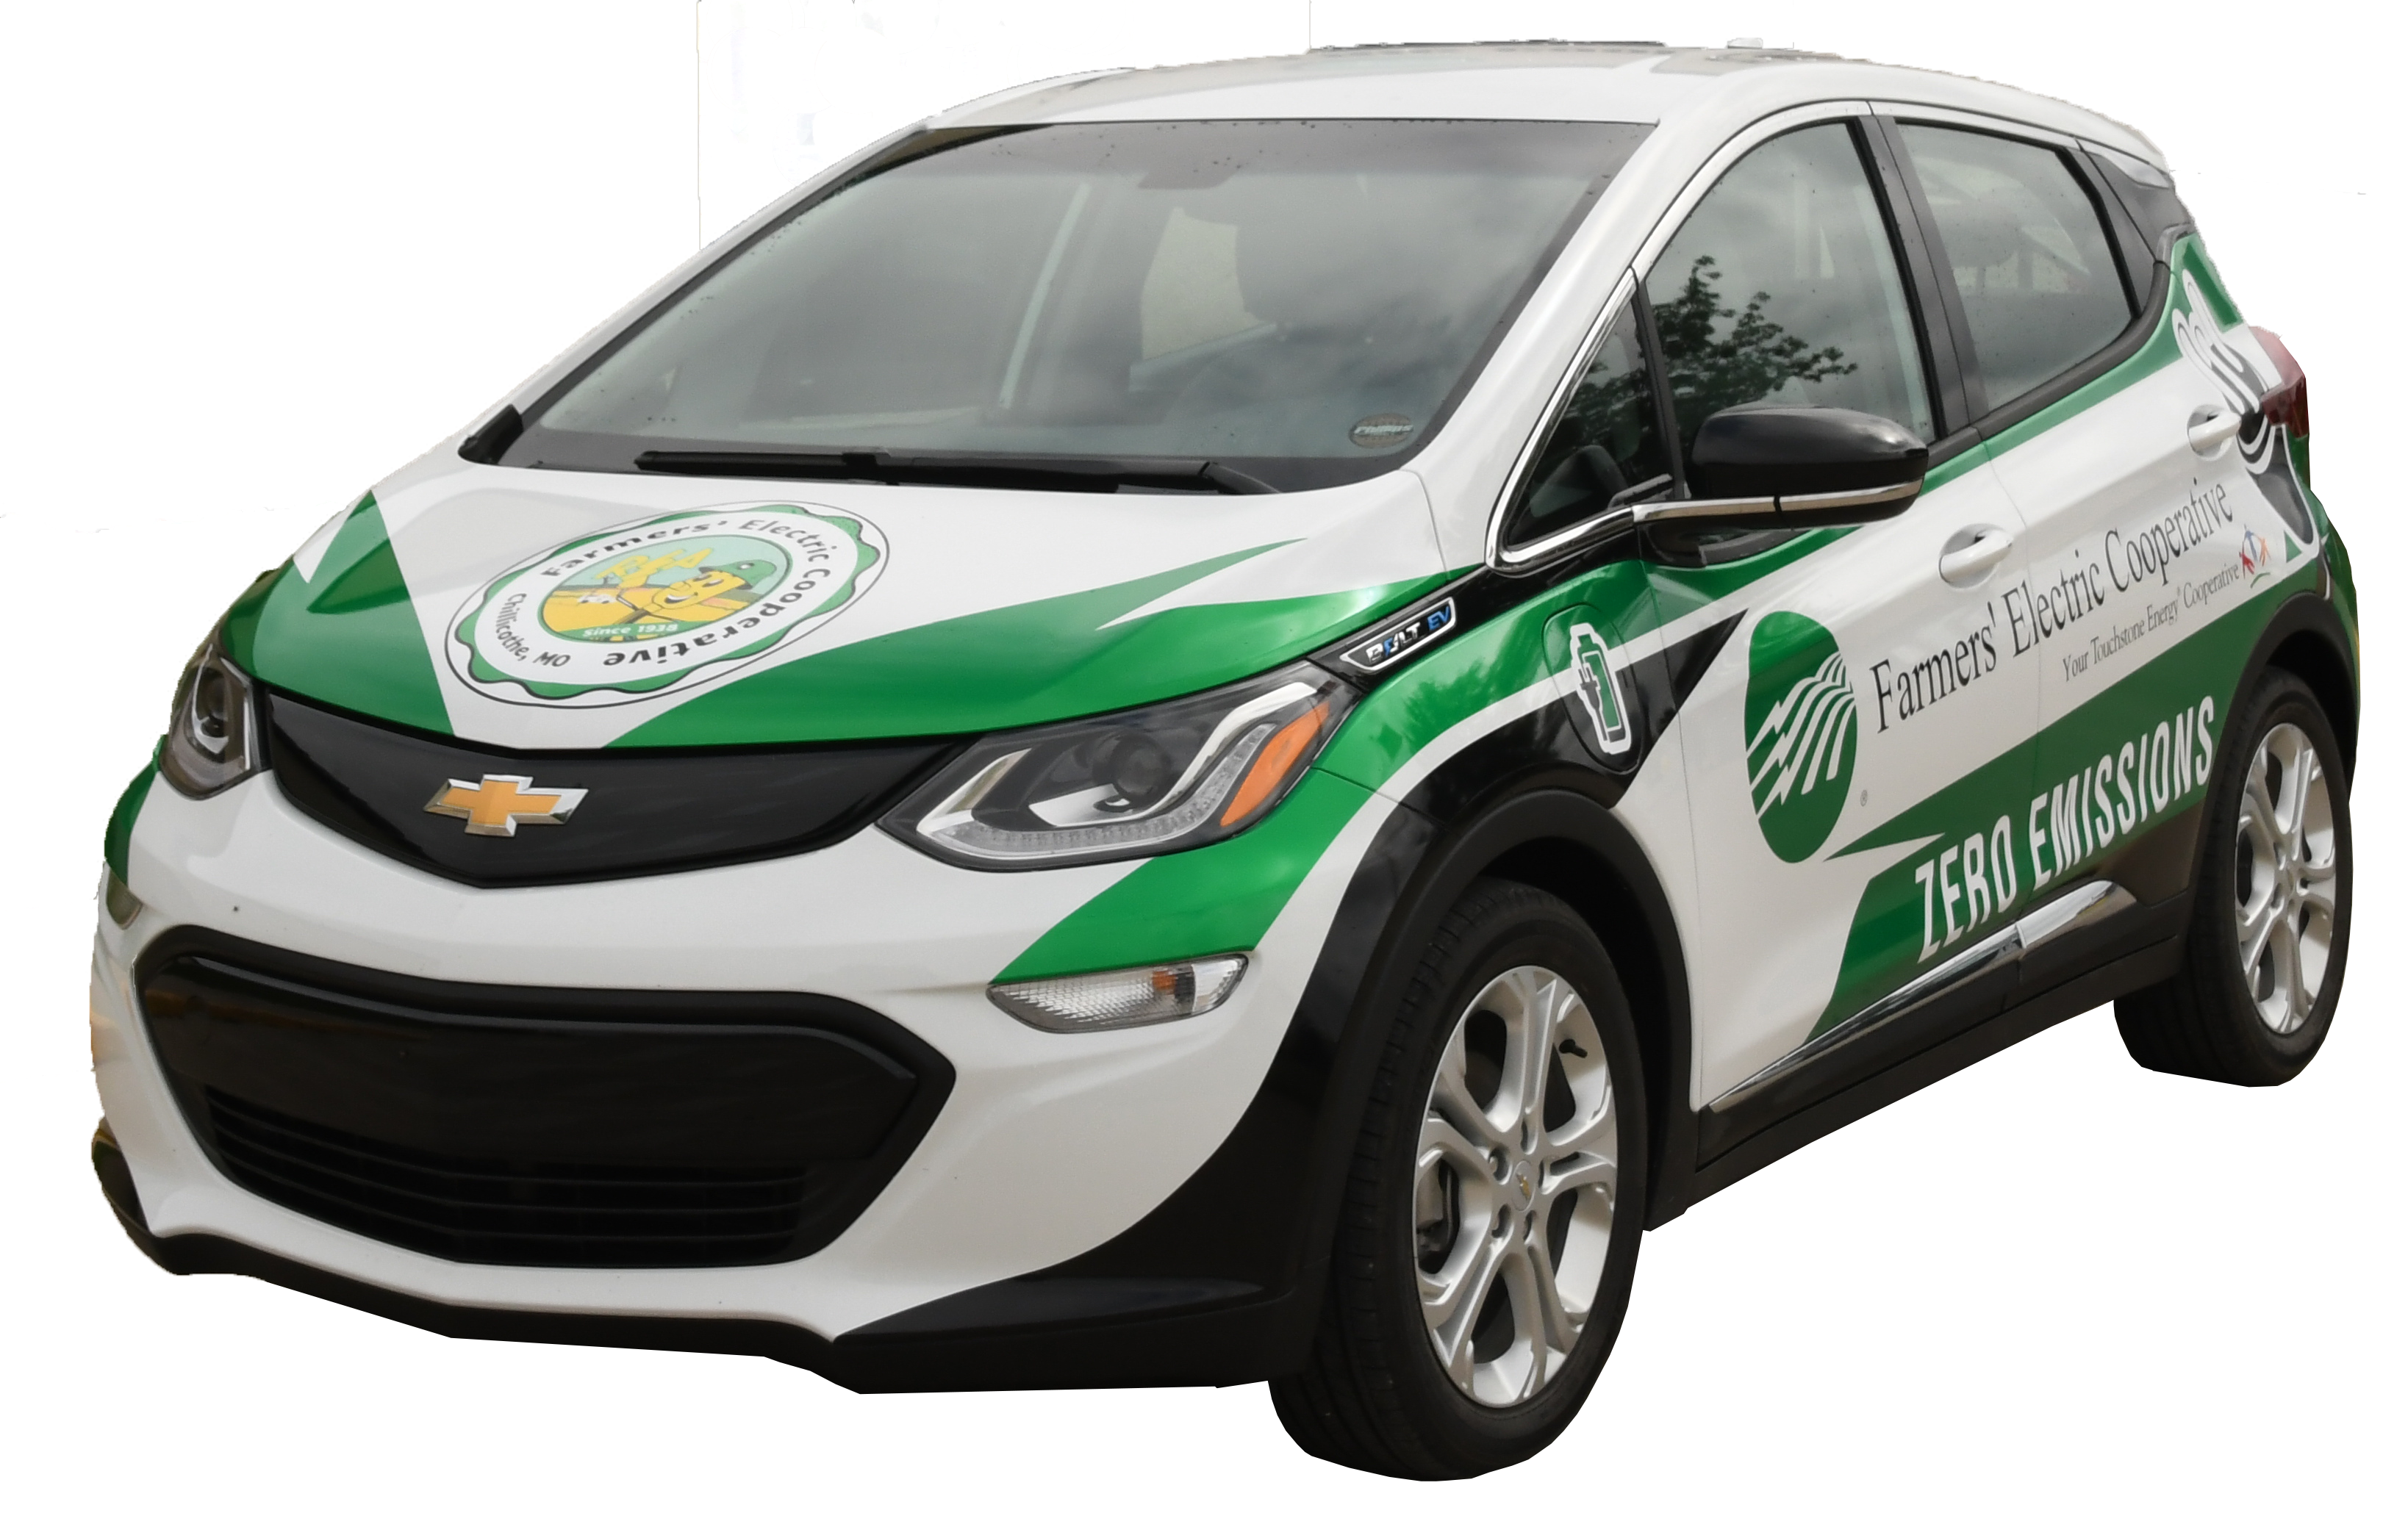 Farmers' Chevy Bolt Electric Vehicle